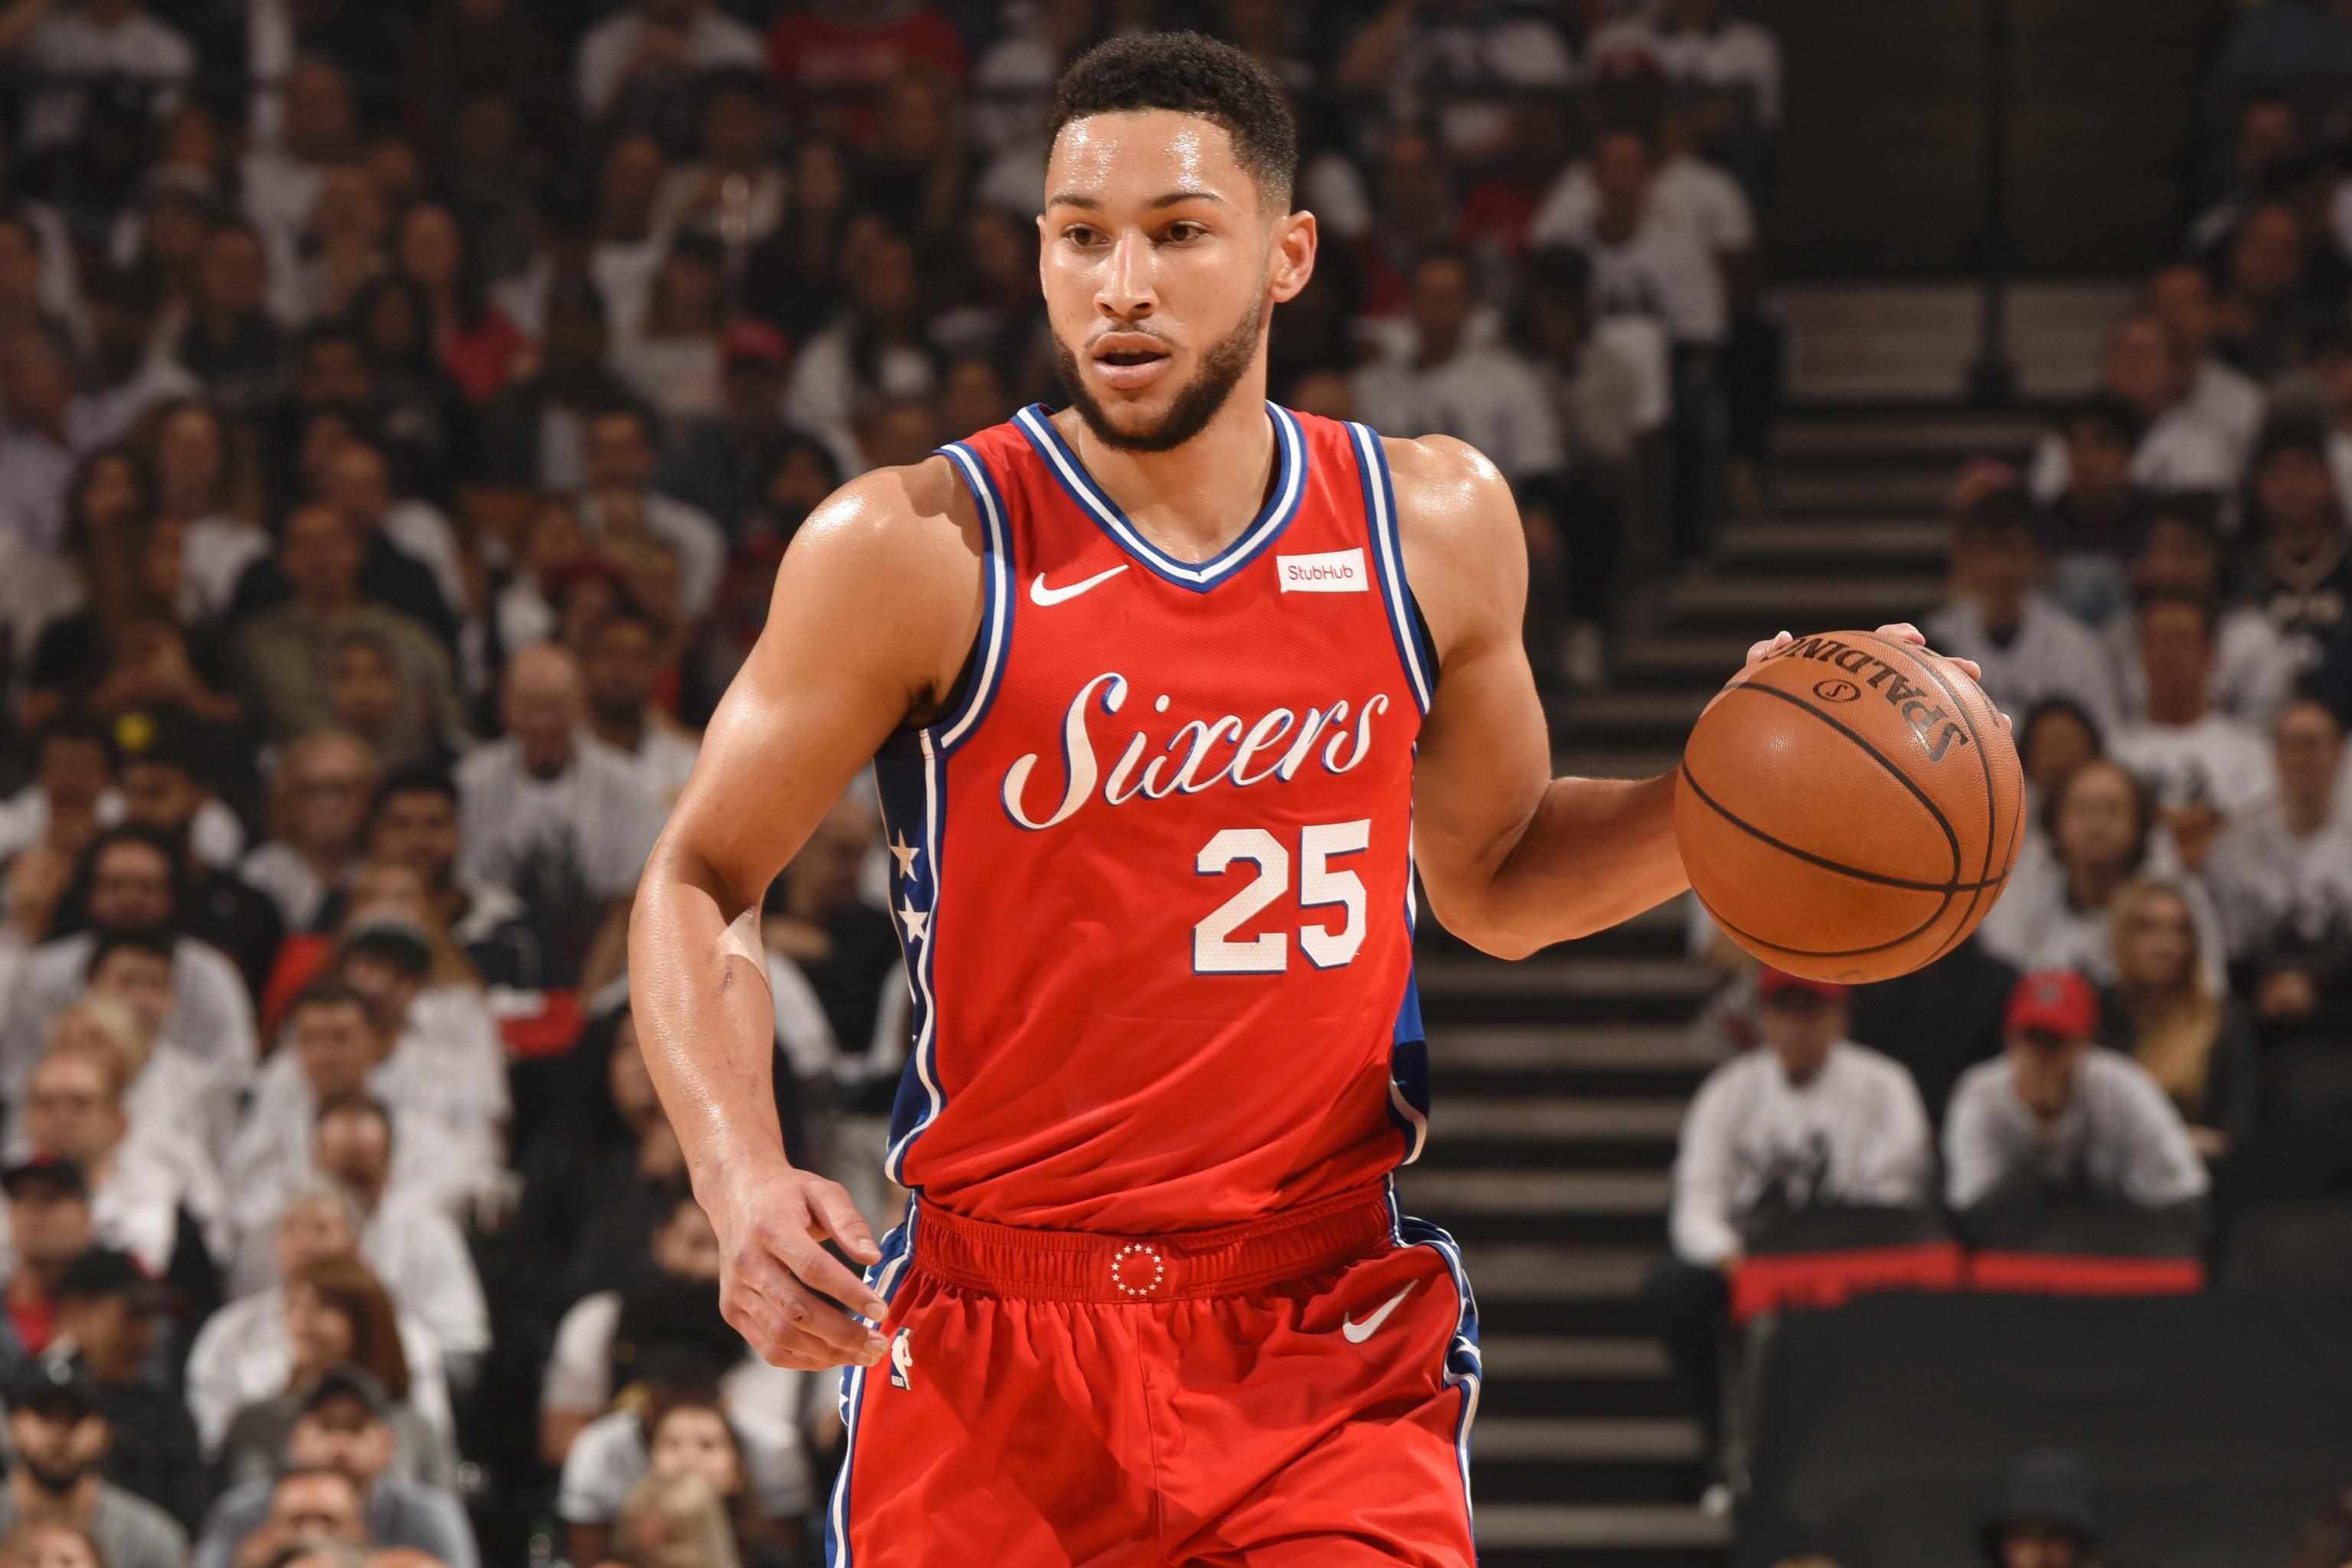 Image result for ben simmons clippers jersey